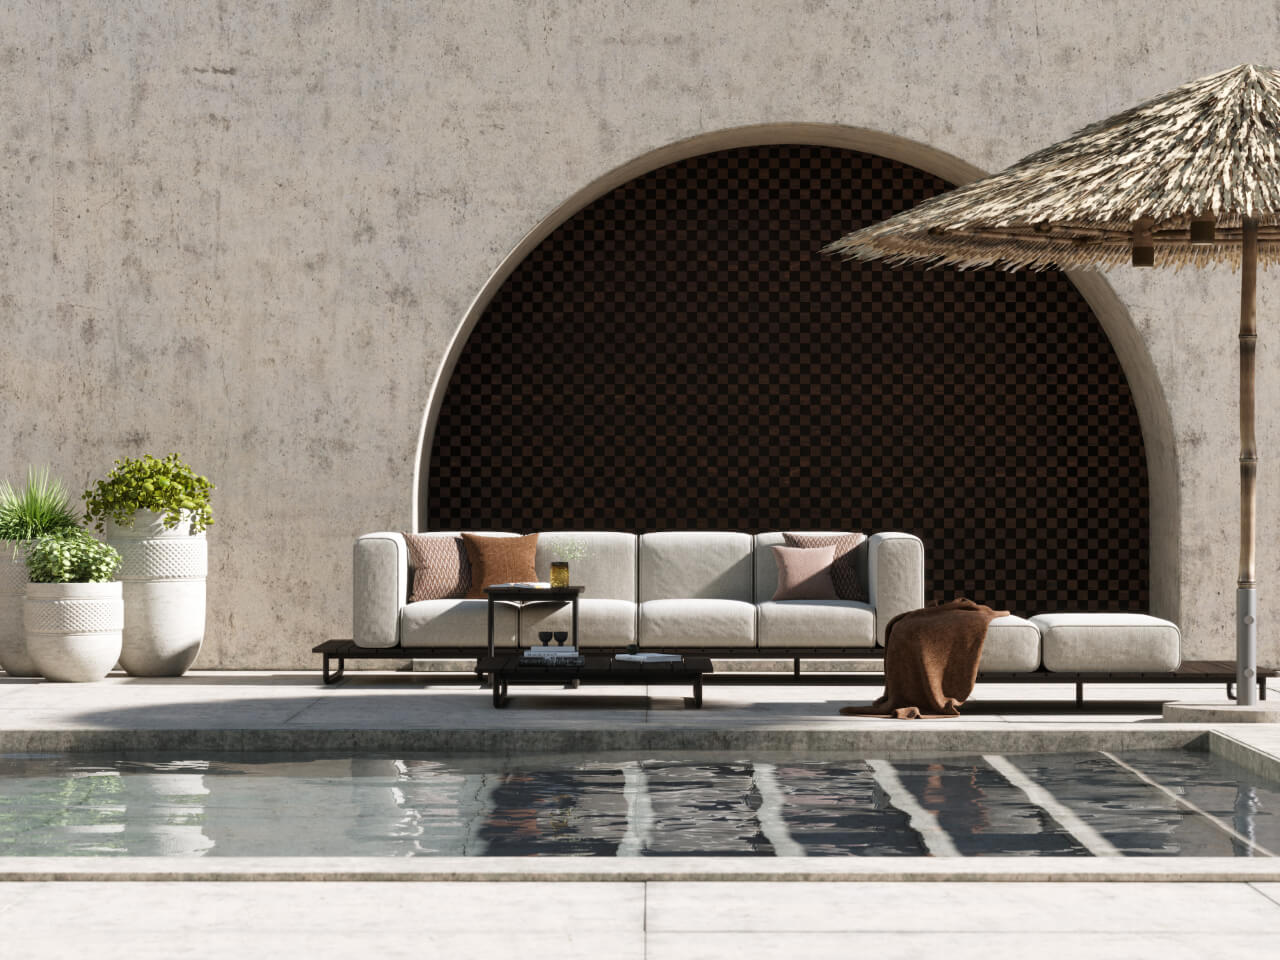 Outdoor-collection-domkapa-summer-interior-design-trends-7